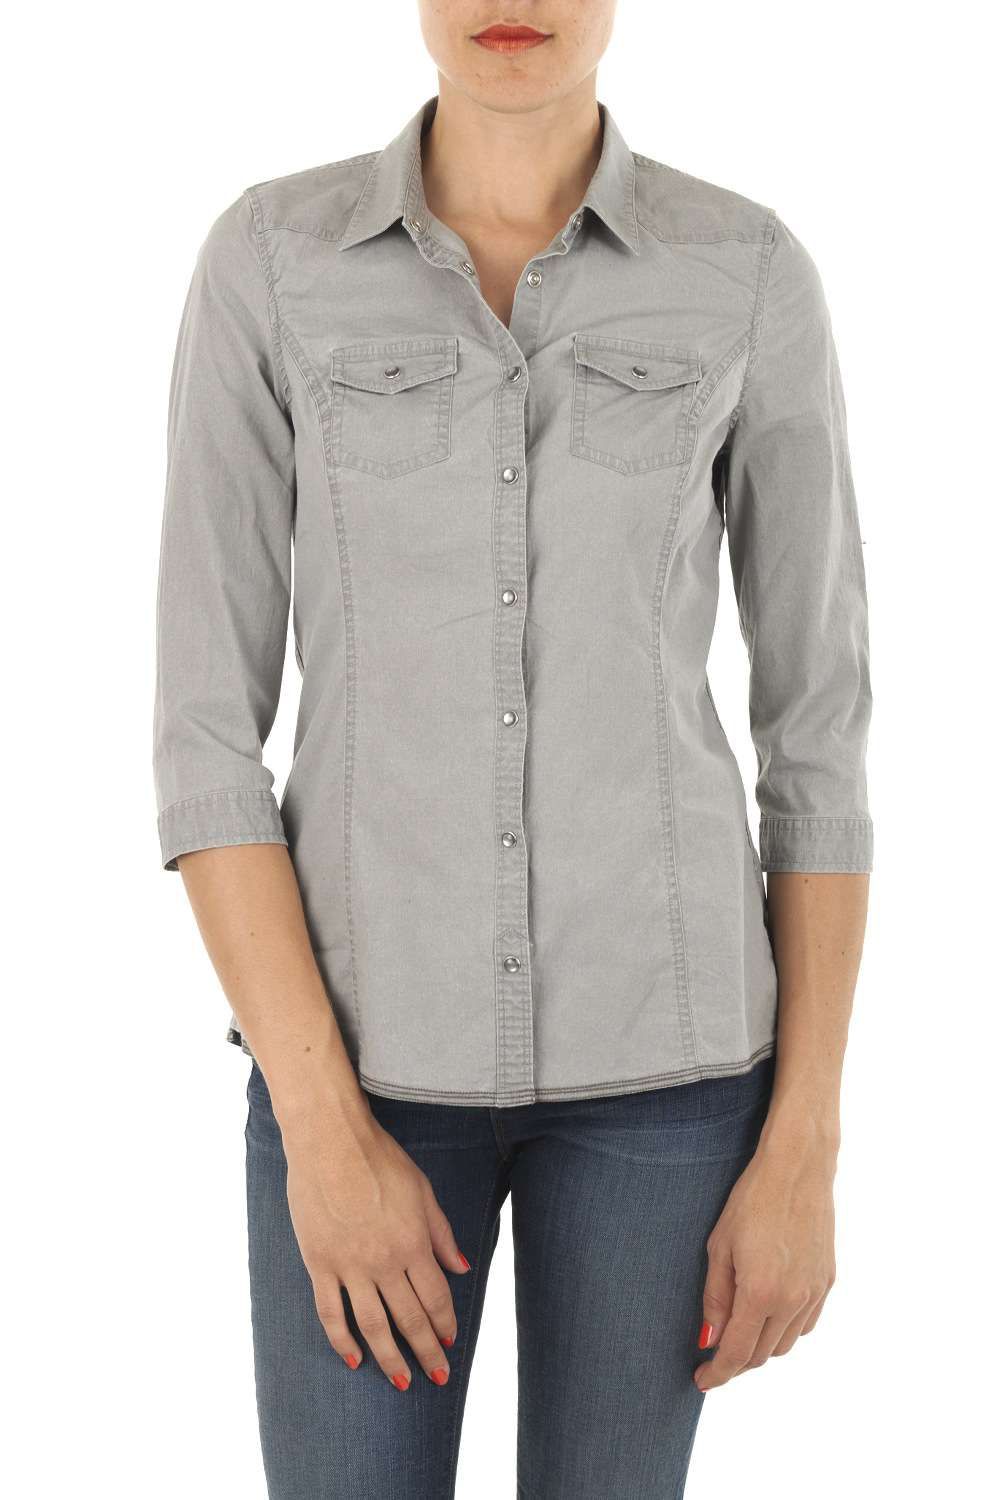 Chemise jean grise femme   Sodeports 78cf757bcabb